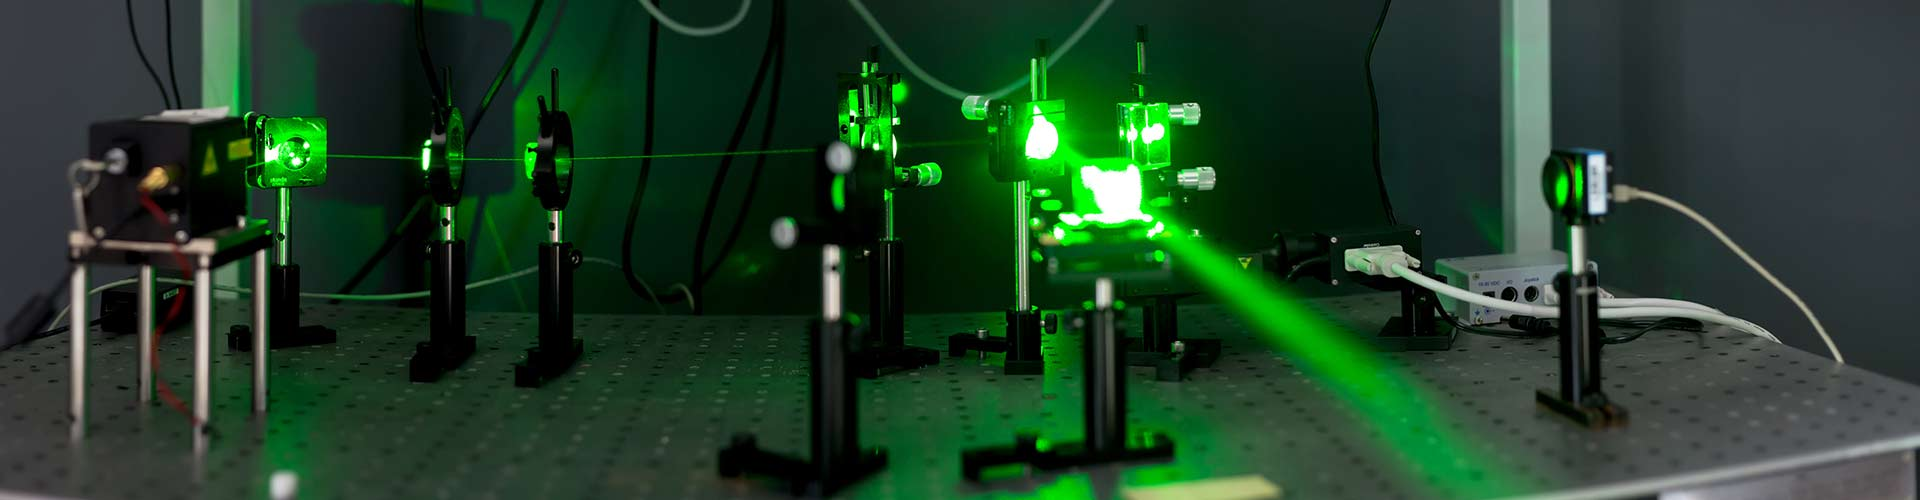 Laser, Optics and Instrumentation Laboratory